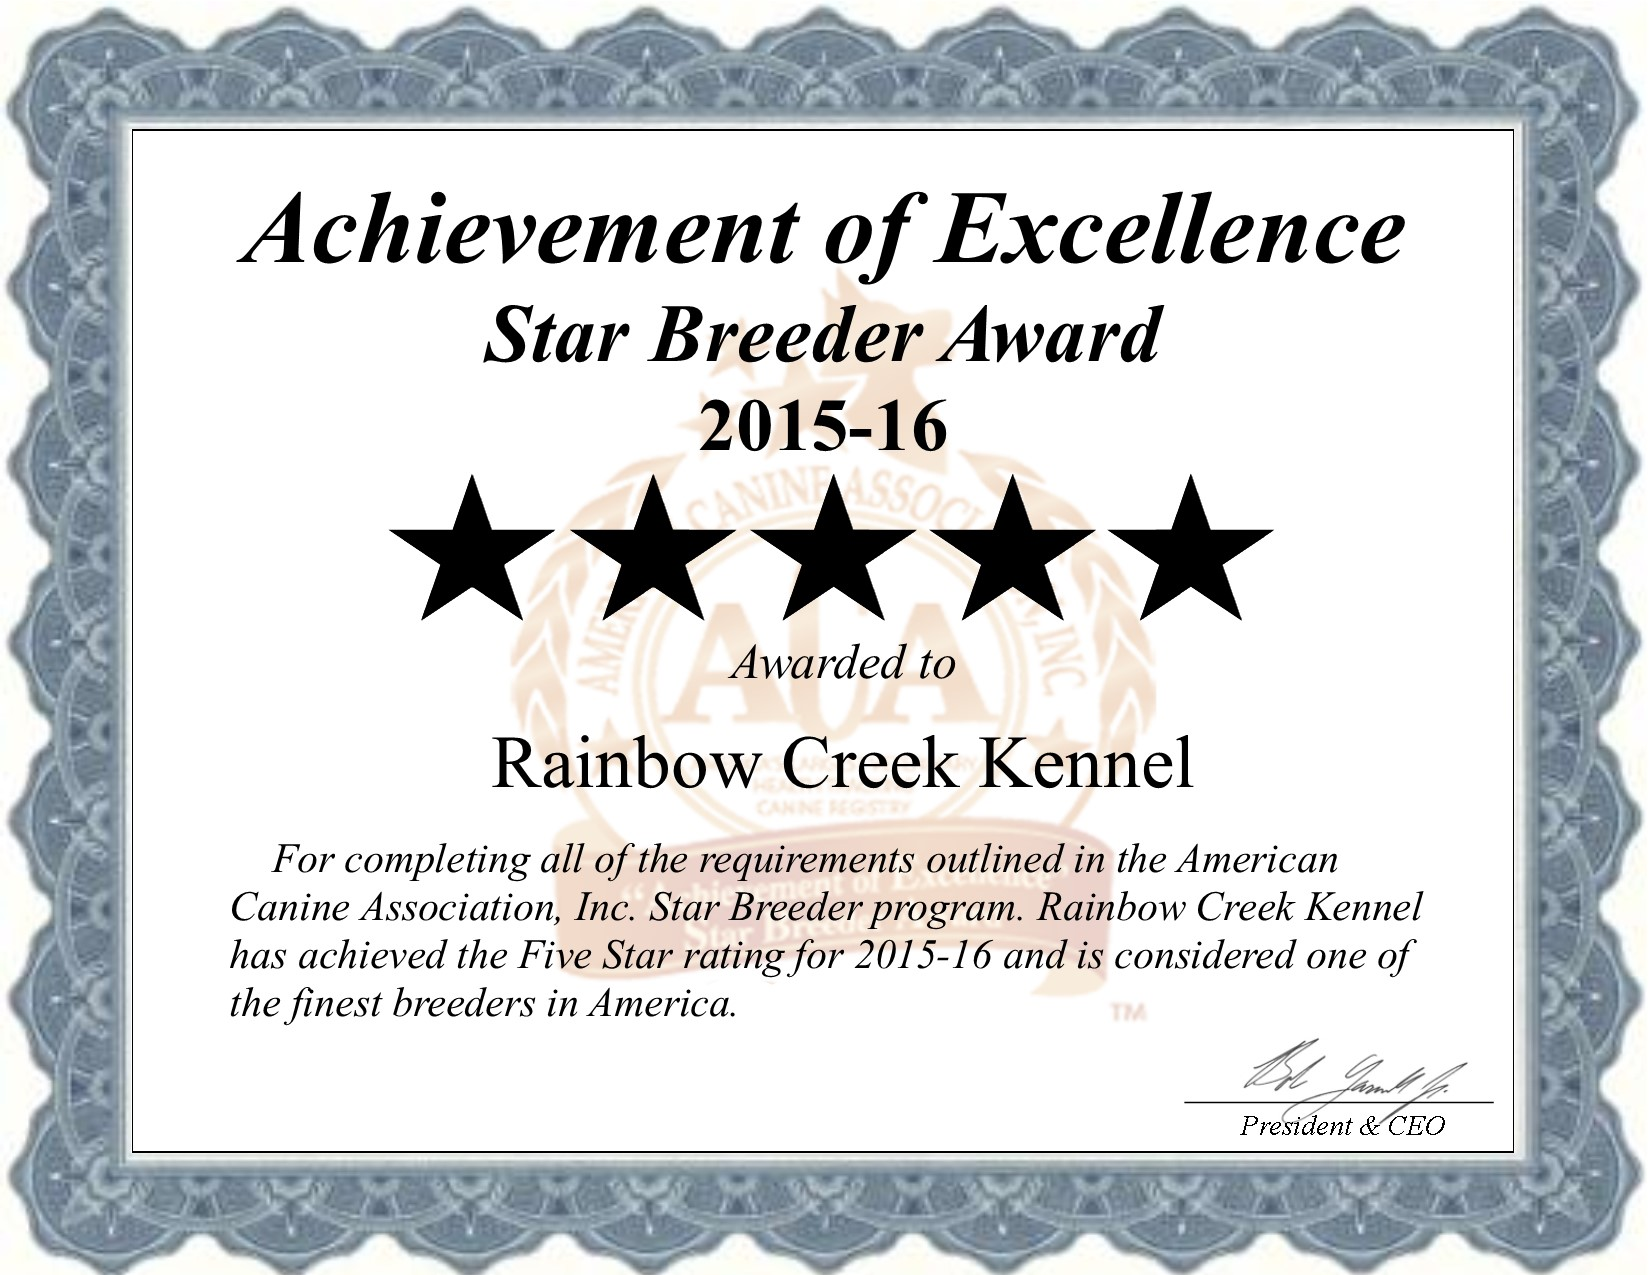 Rainbow, Creek, Kennel, Rainbow-Creek, rainbow_creek_kennel, rainbowcreek, lyon, ny, new york, breeder, dog, star star-breeder, starbreeder, 5 star, dogs, puppy, puppies, five star, kennels, ACA, American, canine, association, dogshow, shows, handler, new, york, new-york, puppymill, mill, commercial, professional